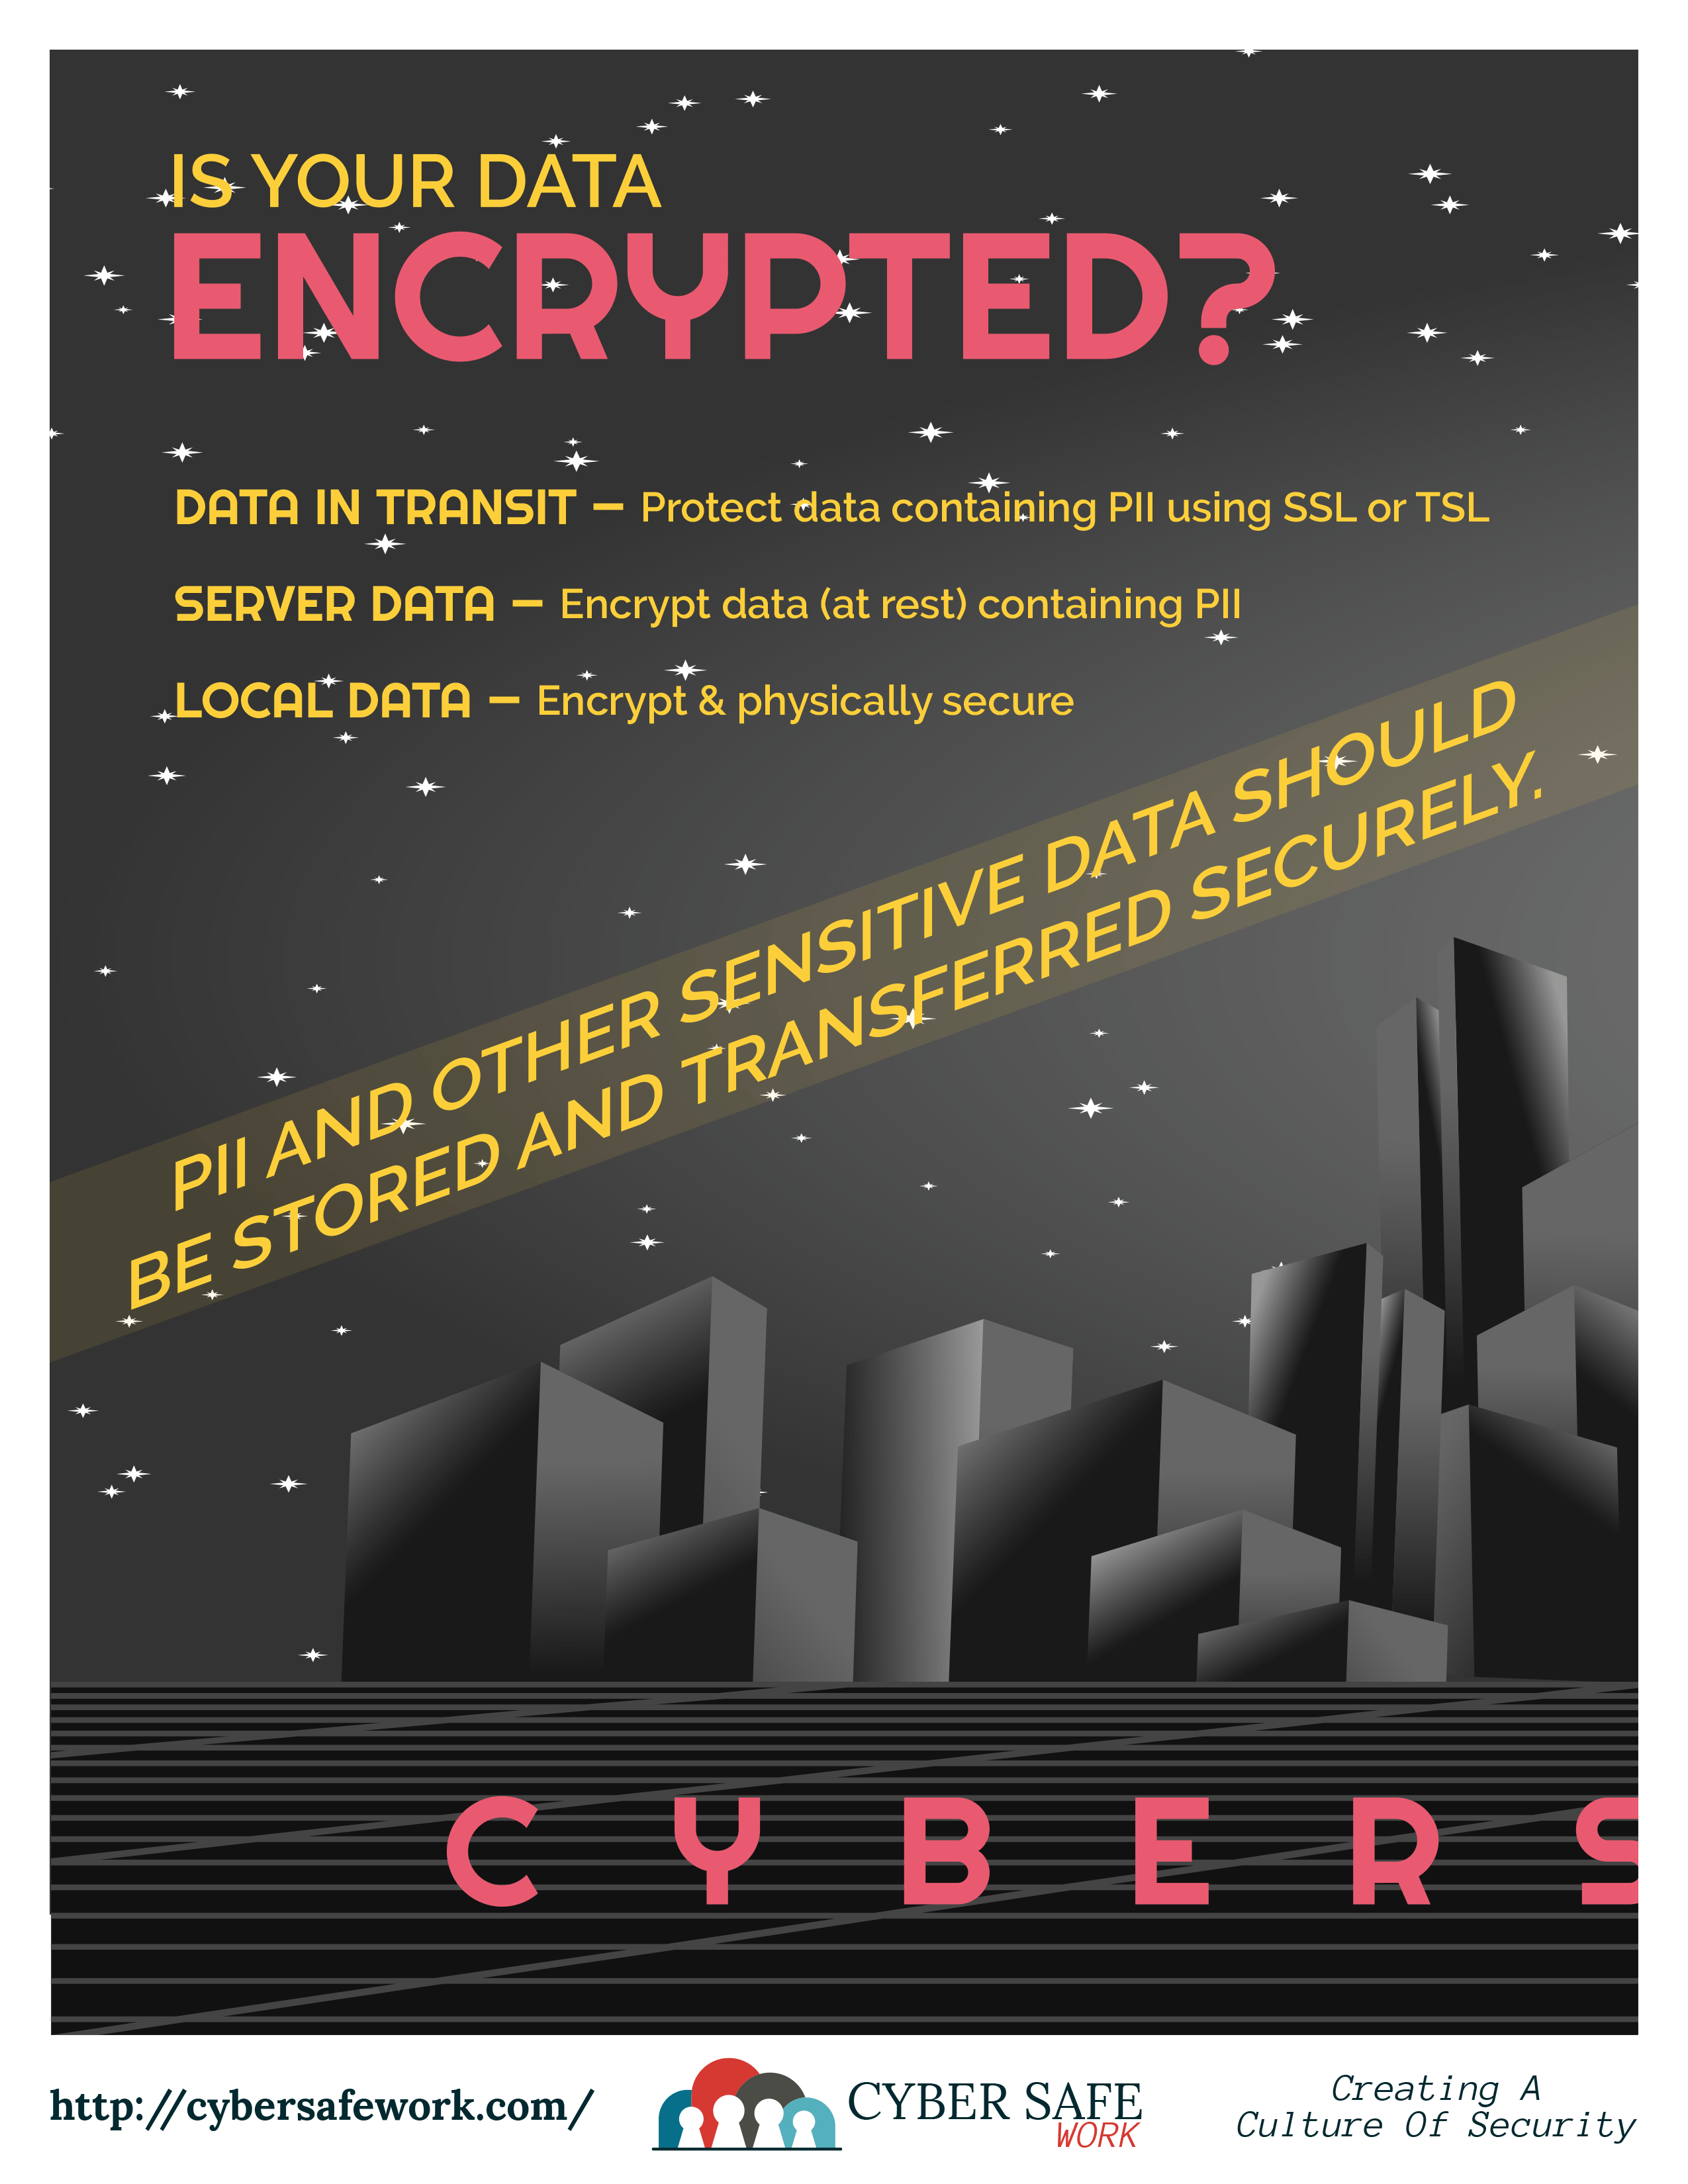 free cybersecurity poster about data encryption july 2019